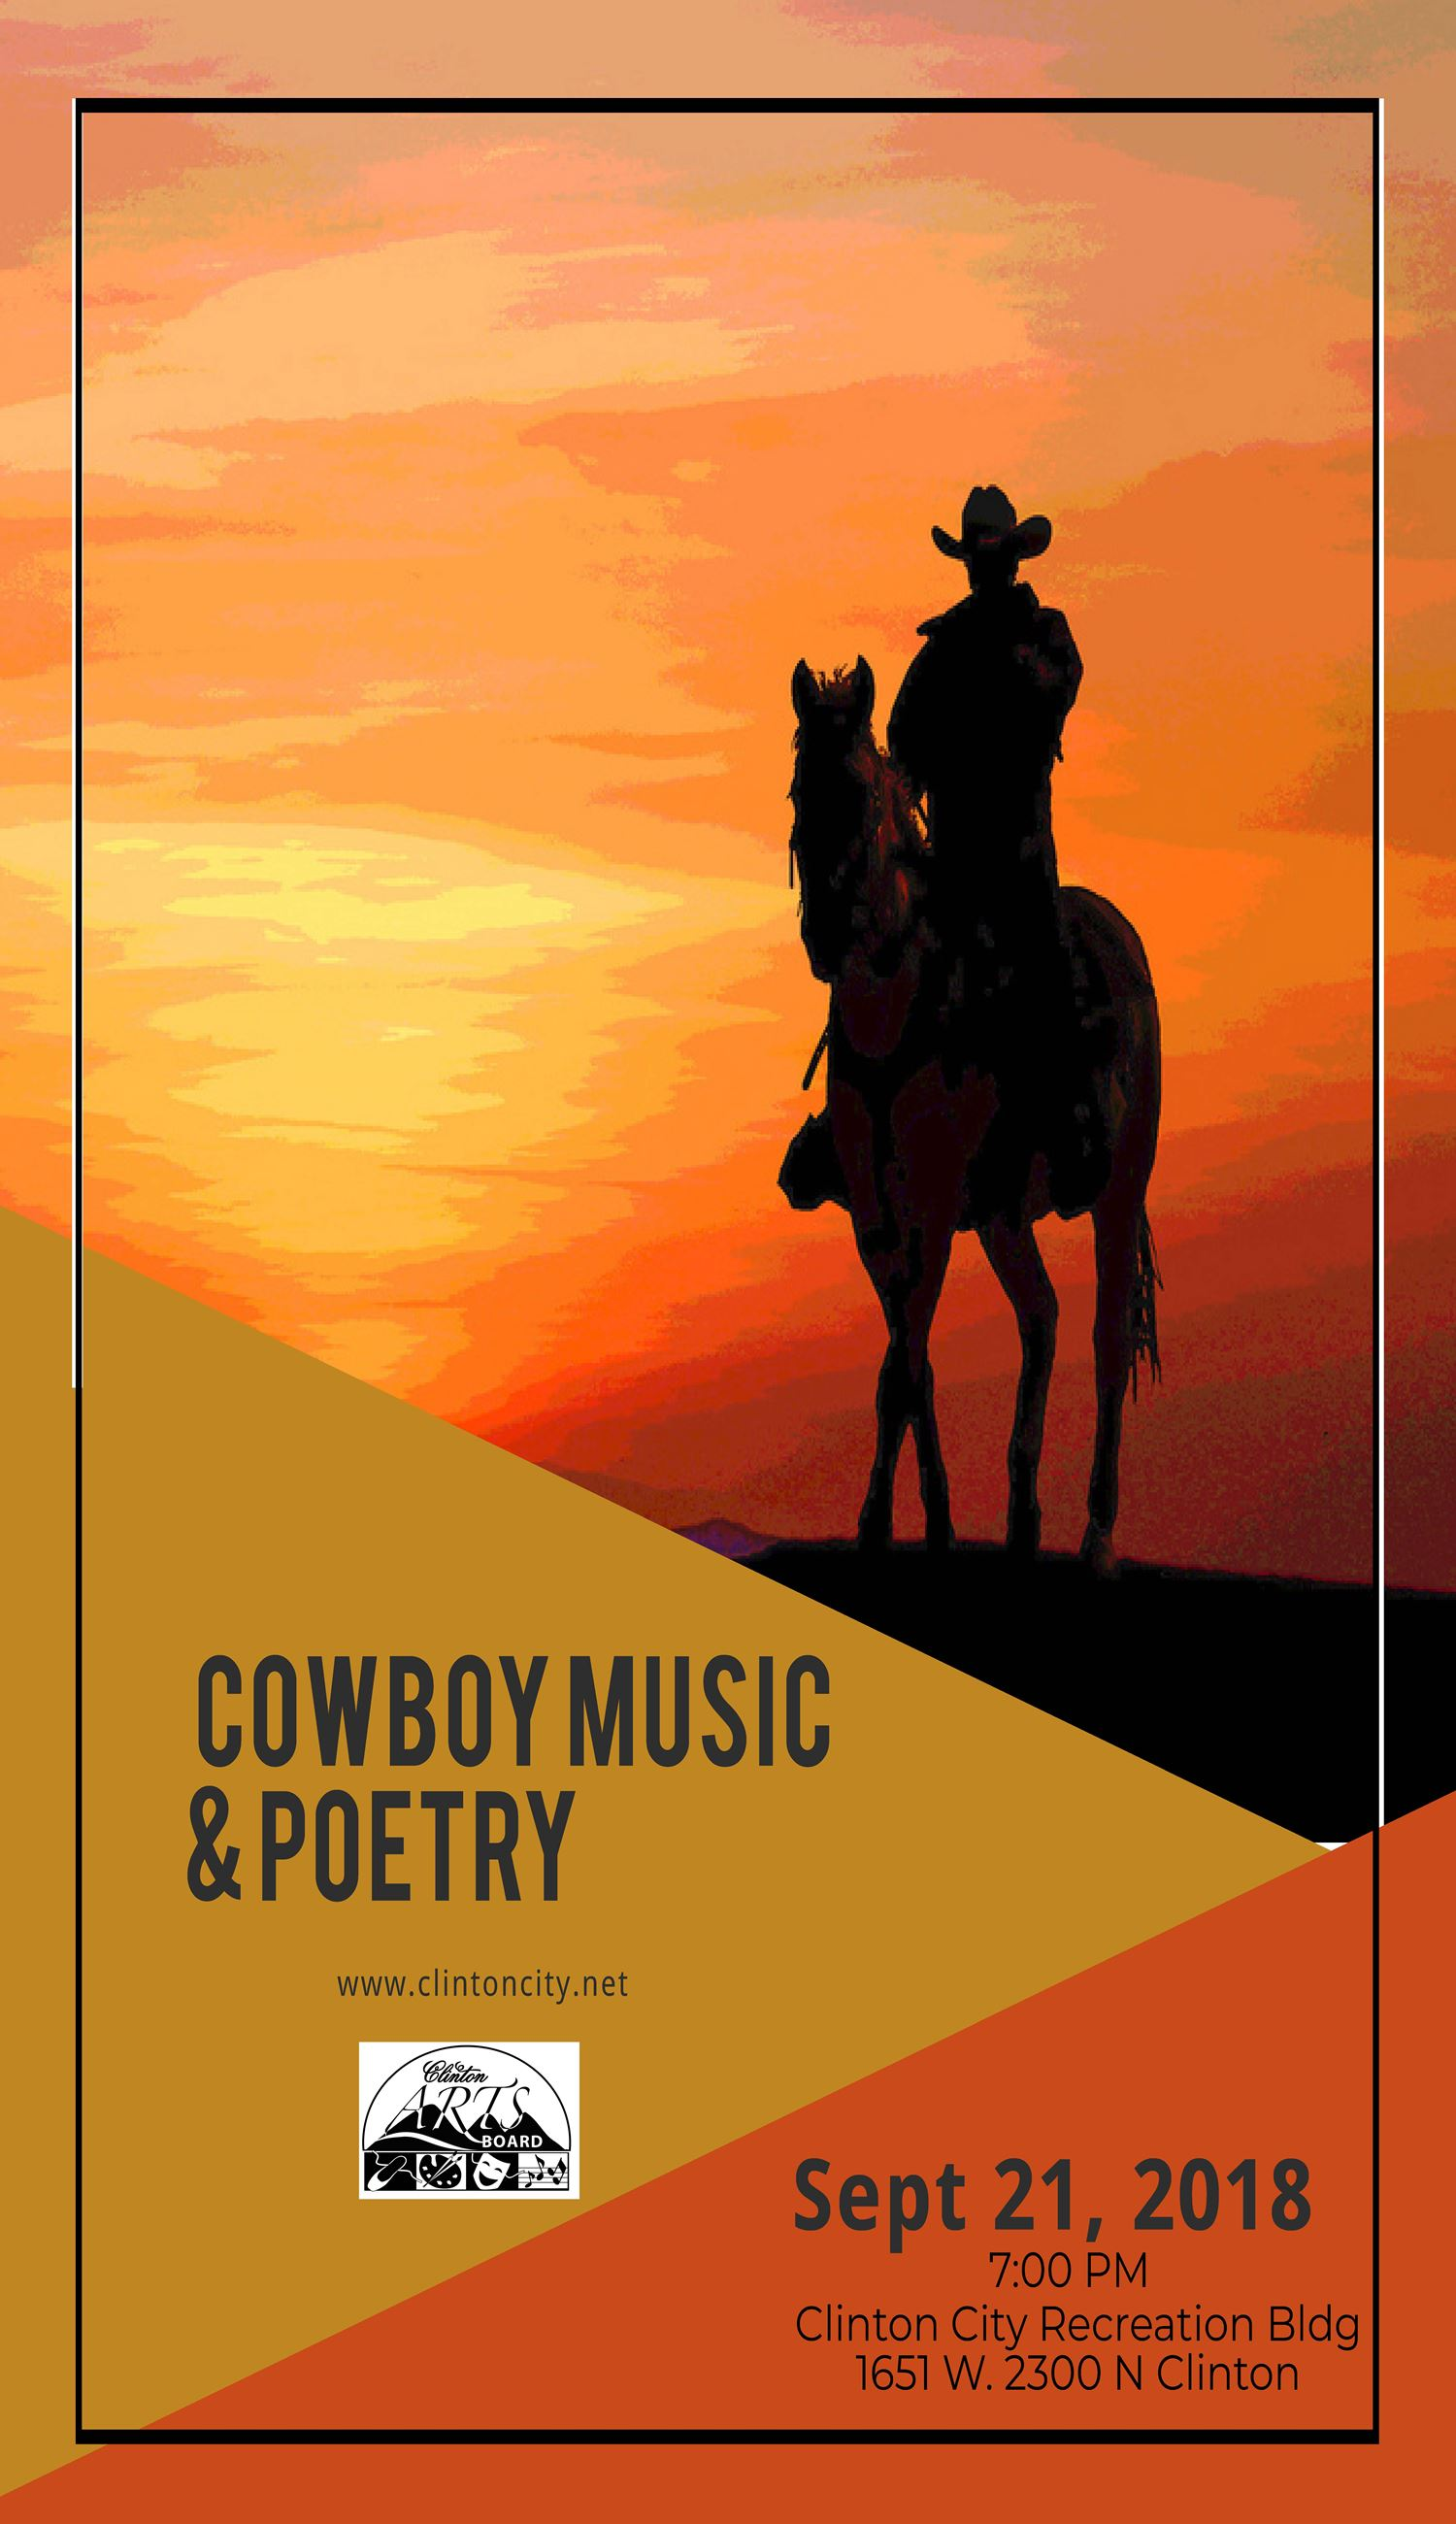 Cowboy music and Poetry flier 2018